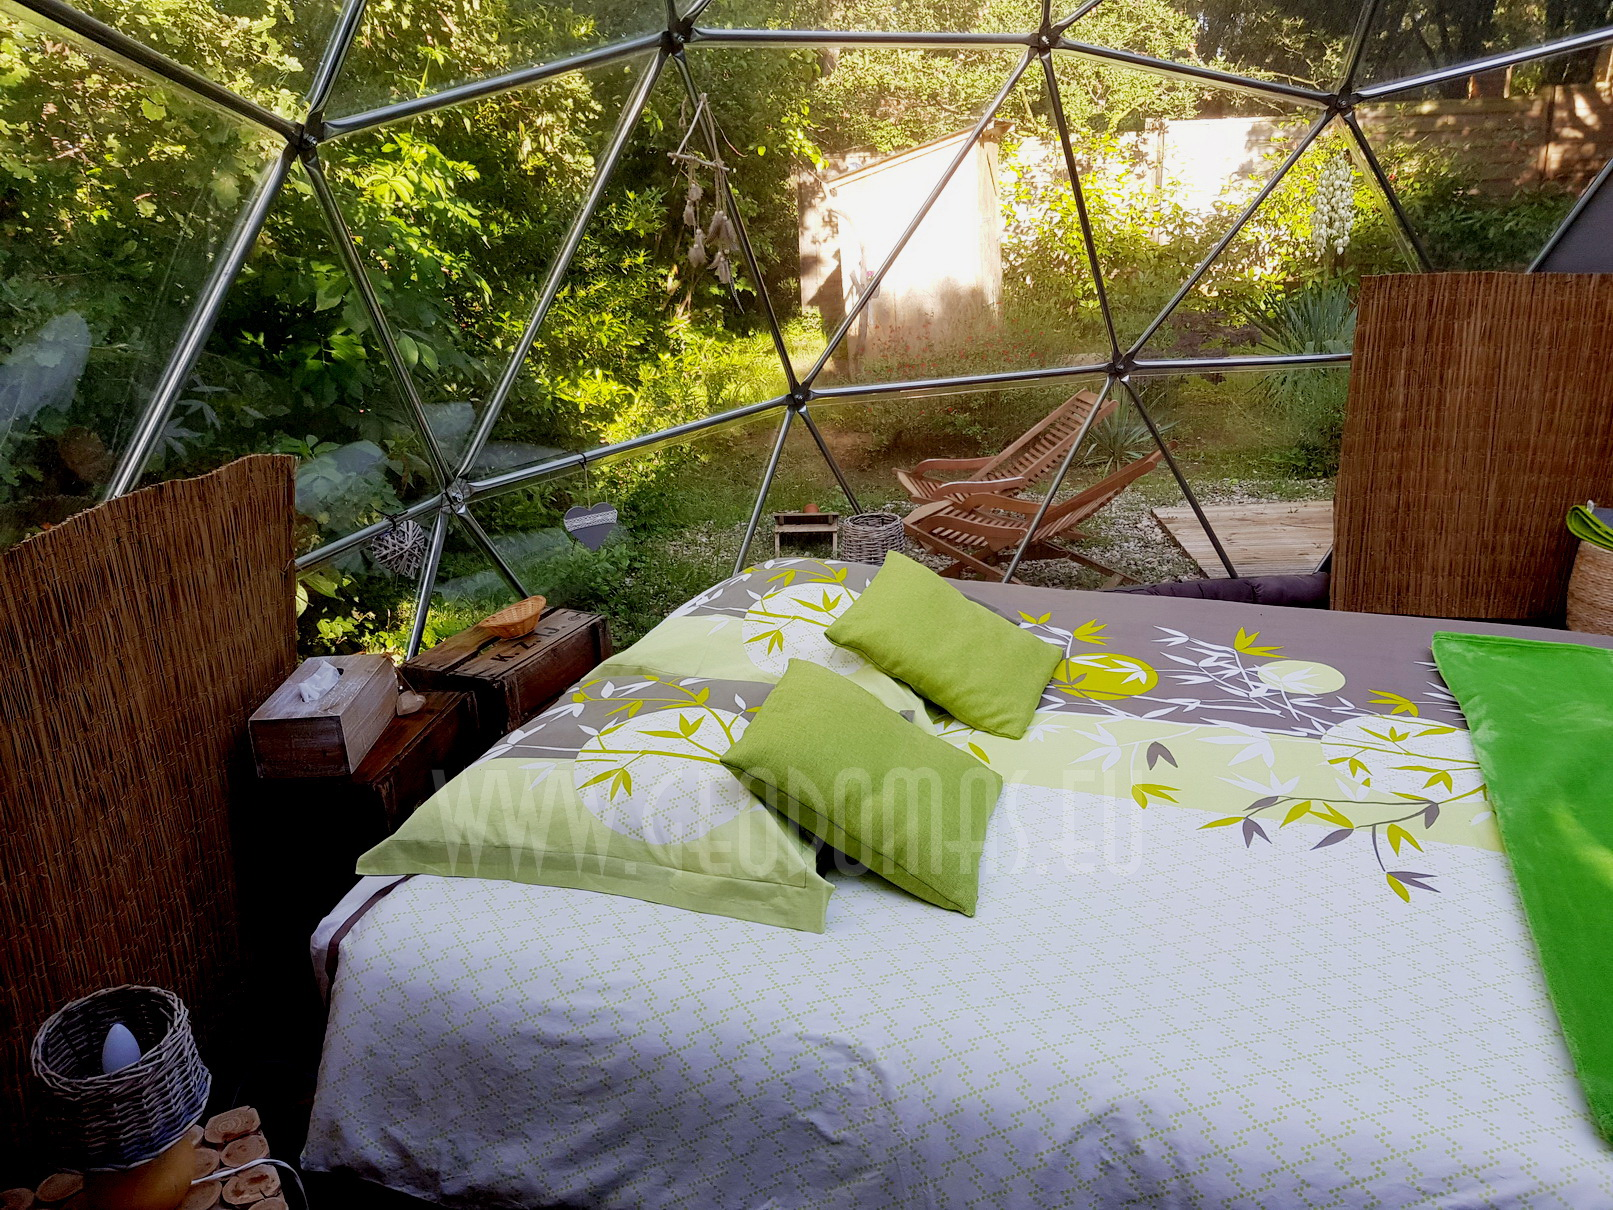 20m² Glamping Maisons Bulles™ night Panoramic bubble Ø5m